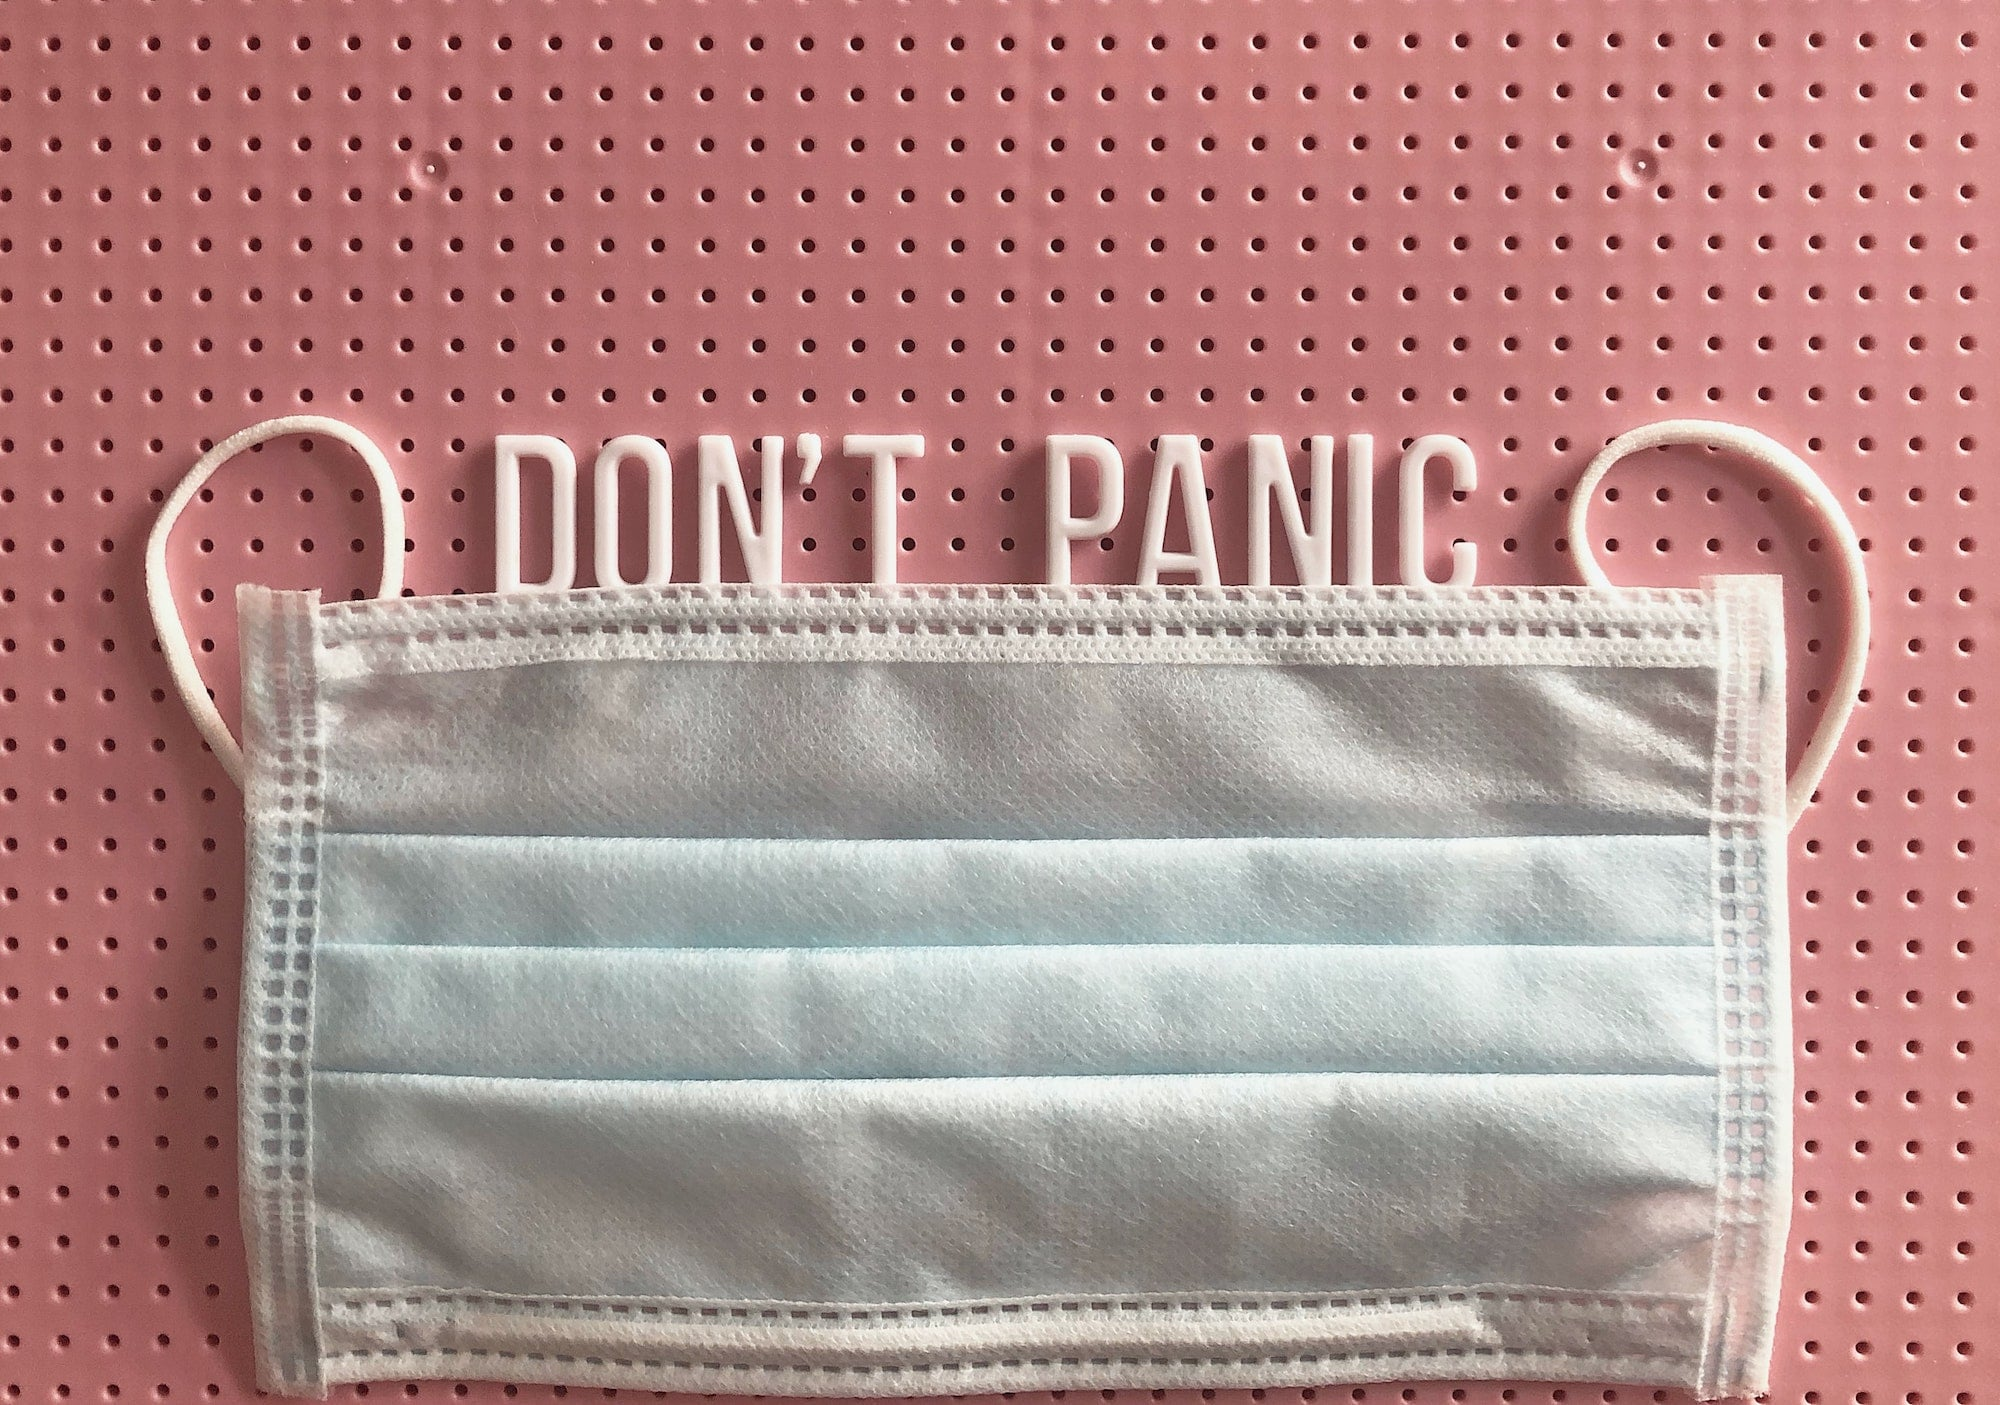 COVID 19 DONT PANIC Gym Mask for working out